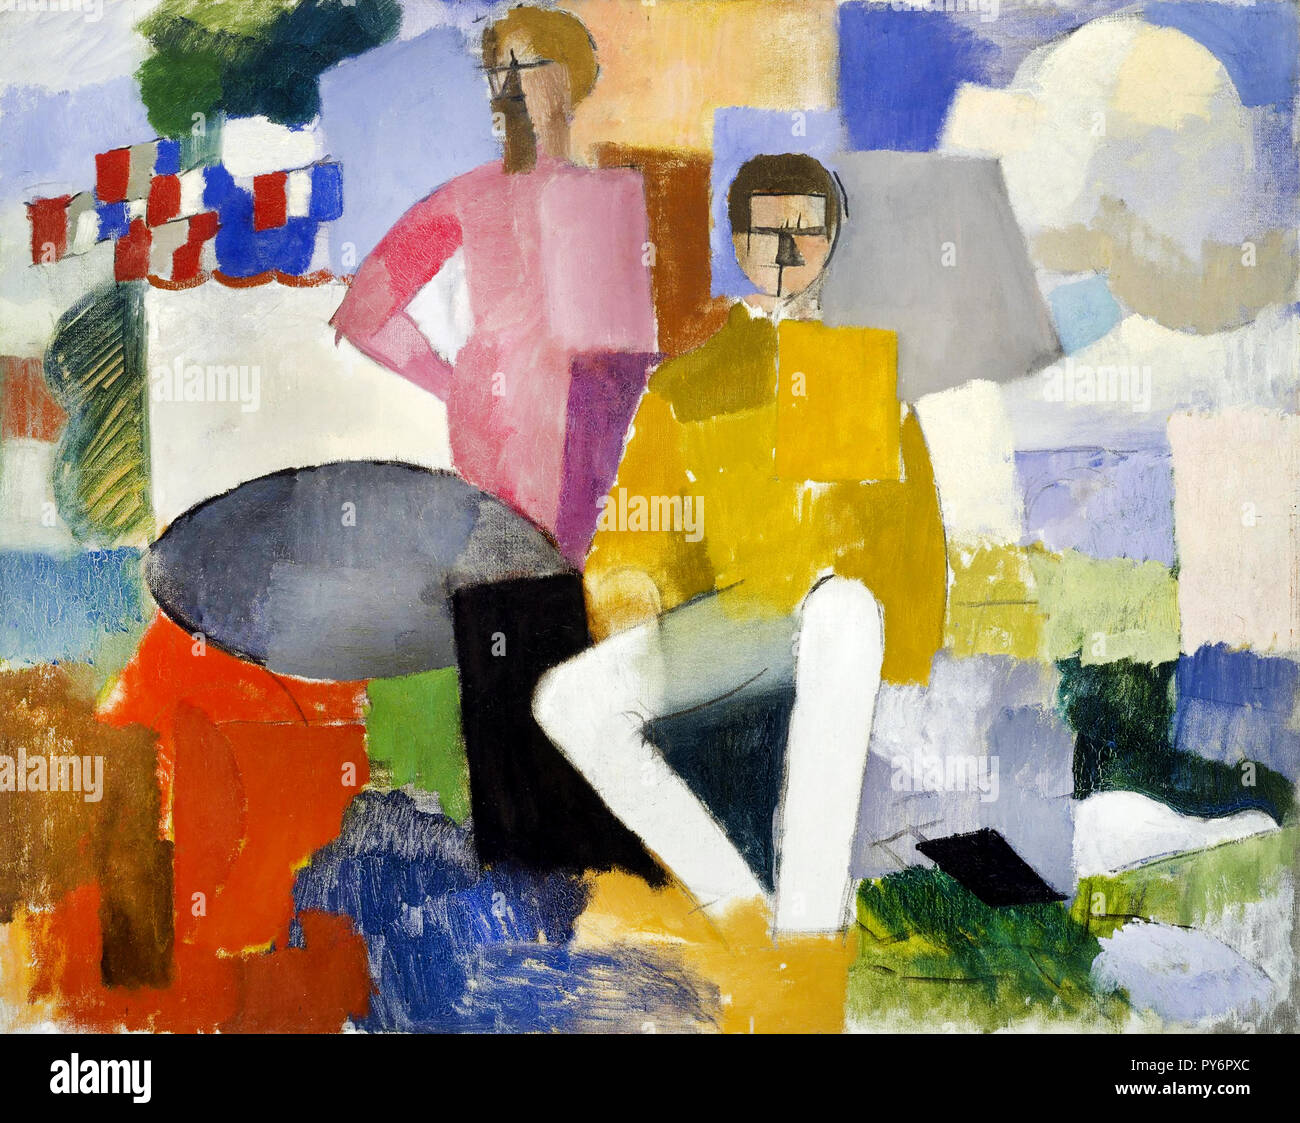 Roger de La Fresnaye, The Fourteenth of July 1914 Oil on canvas, Museum of Fine Arts, Houston, USA. - Stock Image